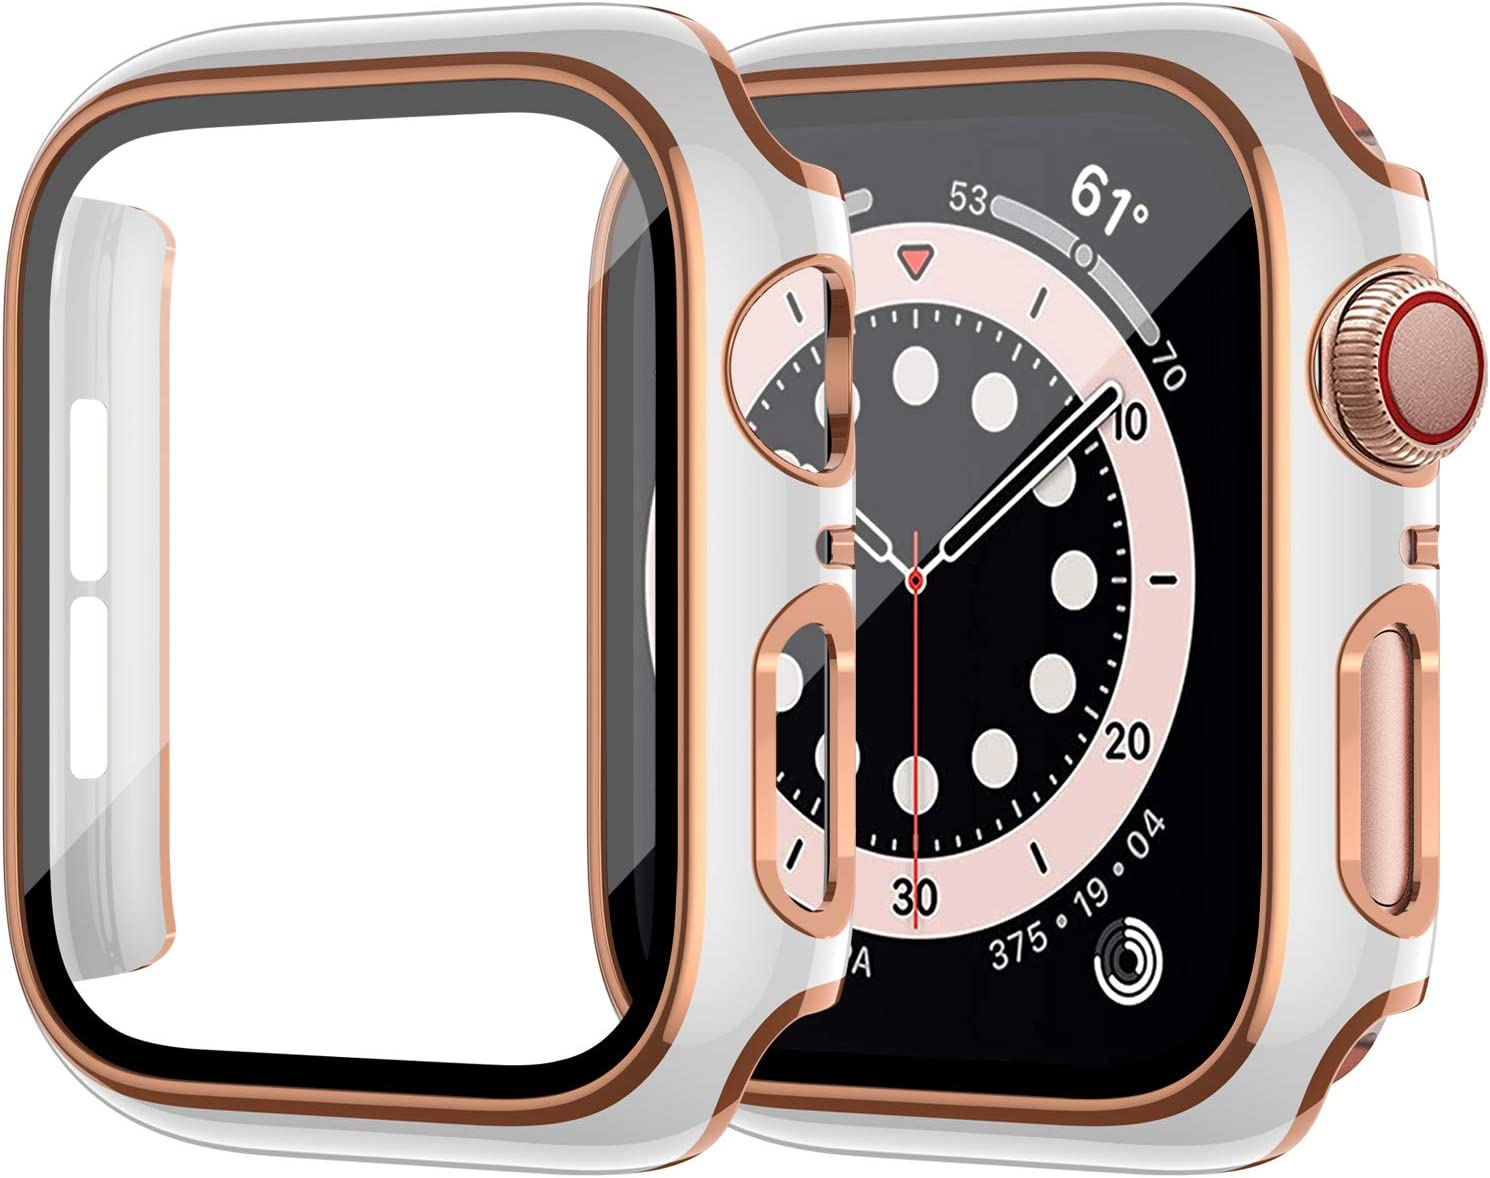 ZEBRE Hard PC Case Compatible with Apple Watch Series 6/5/4/SE 40mm, Built-in Tempered Glass Screen Protector, Rose Gold Edge White Bumper Full Coverage HD Clear Cover for Women Men, White/Rose Gold